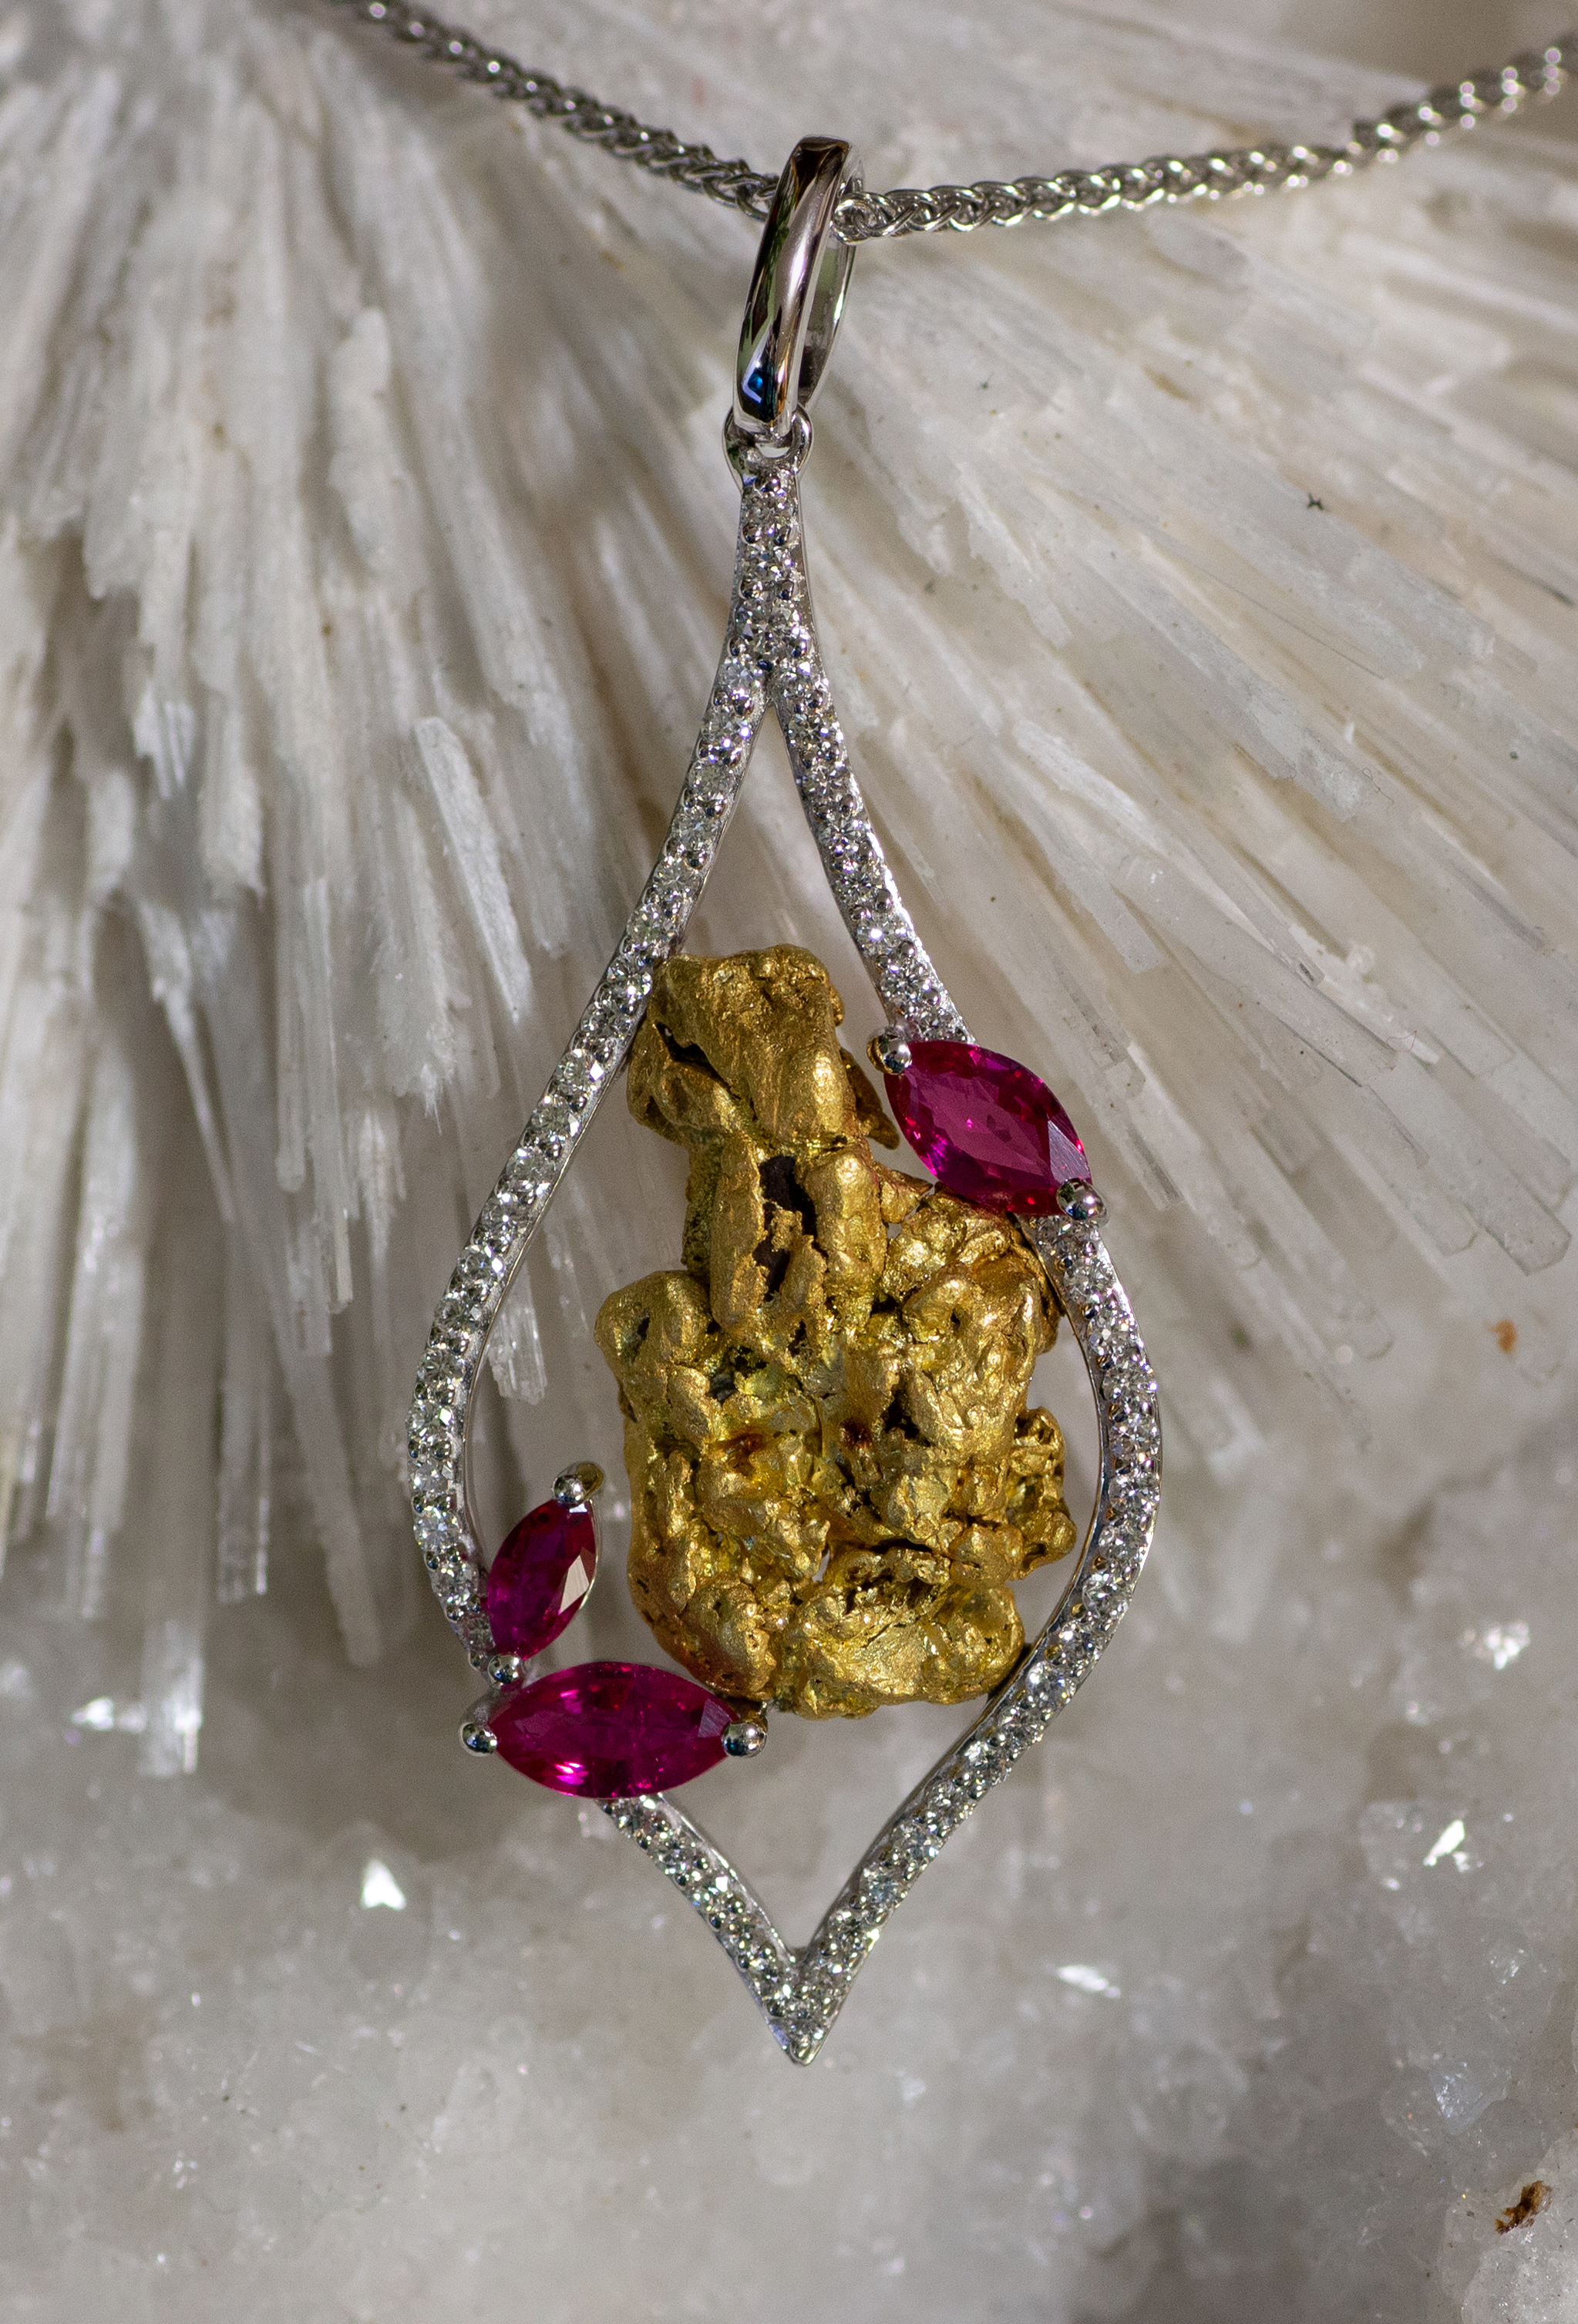 Alaskan Gold Nuggets, Diamonds.and Rubies in 14kt White Gold Pendant